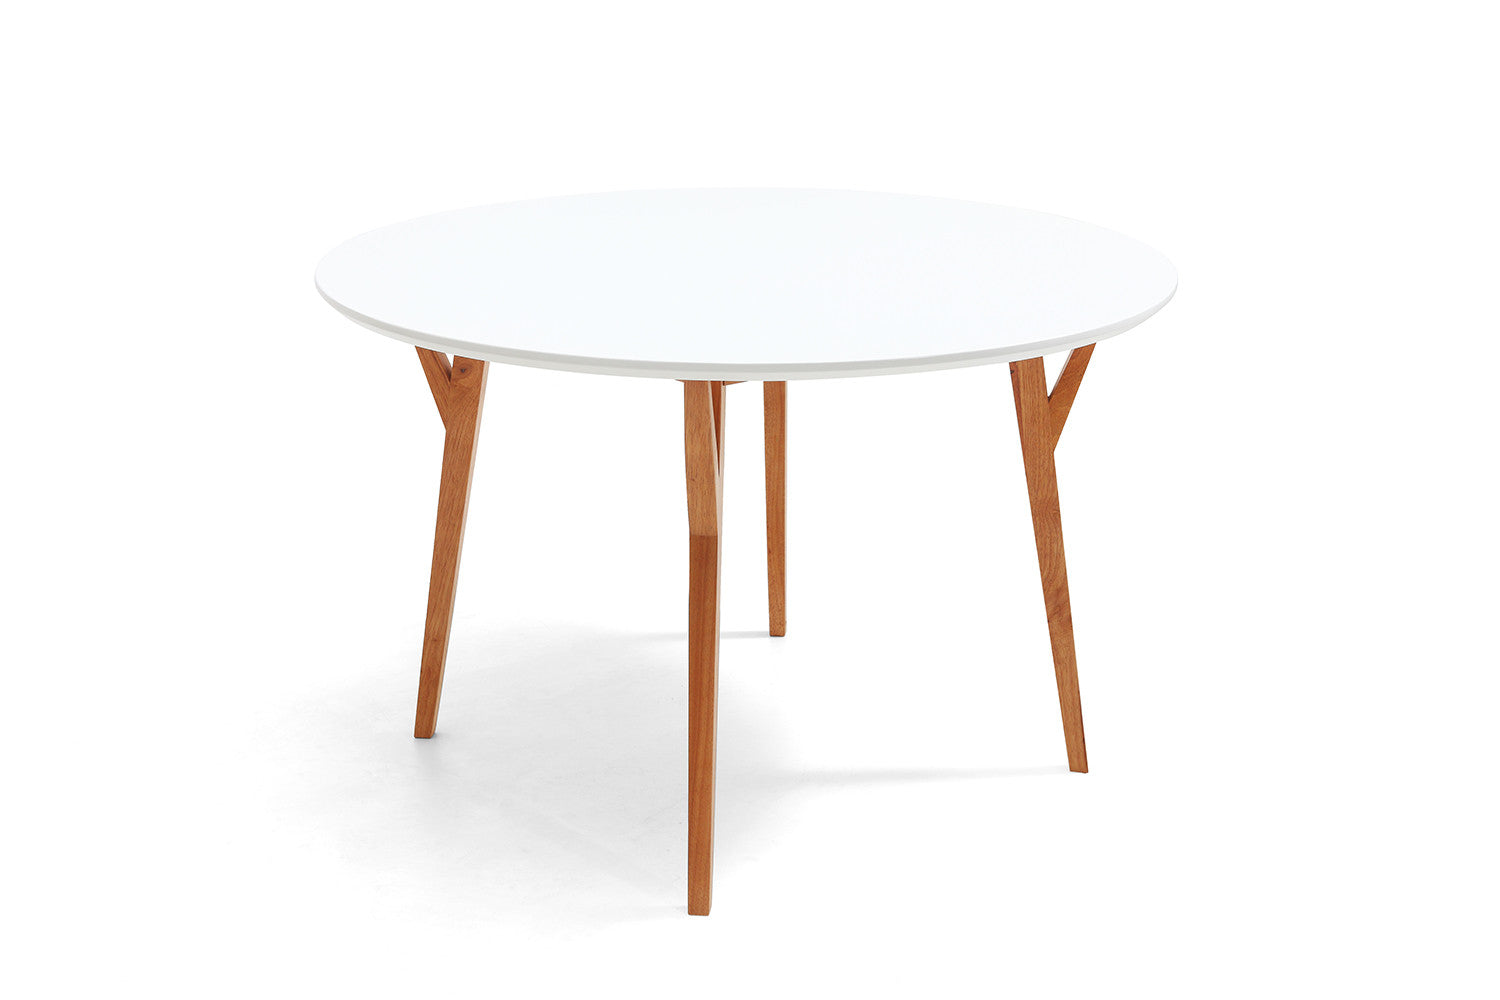 Table de salle manger ronde design scandinave moesa for Pied de table scandinave